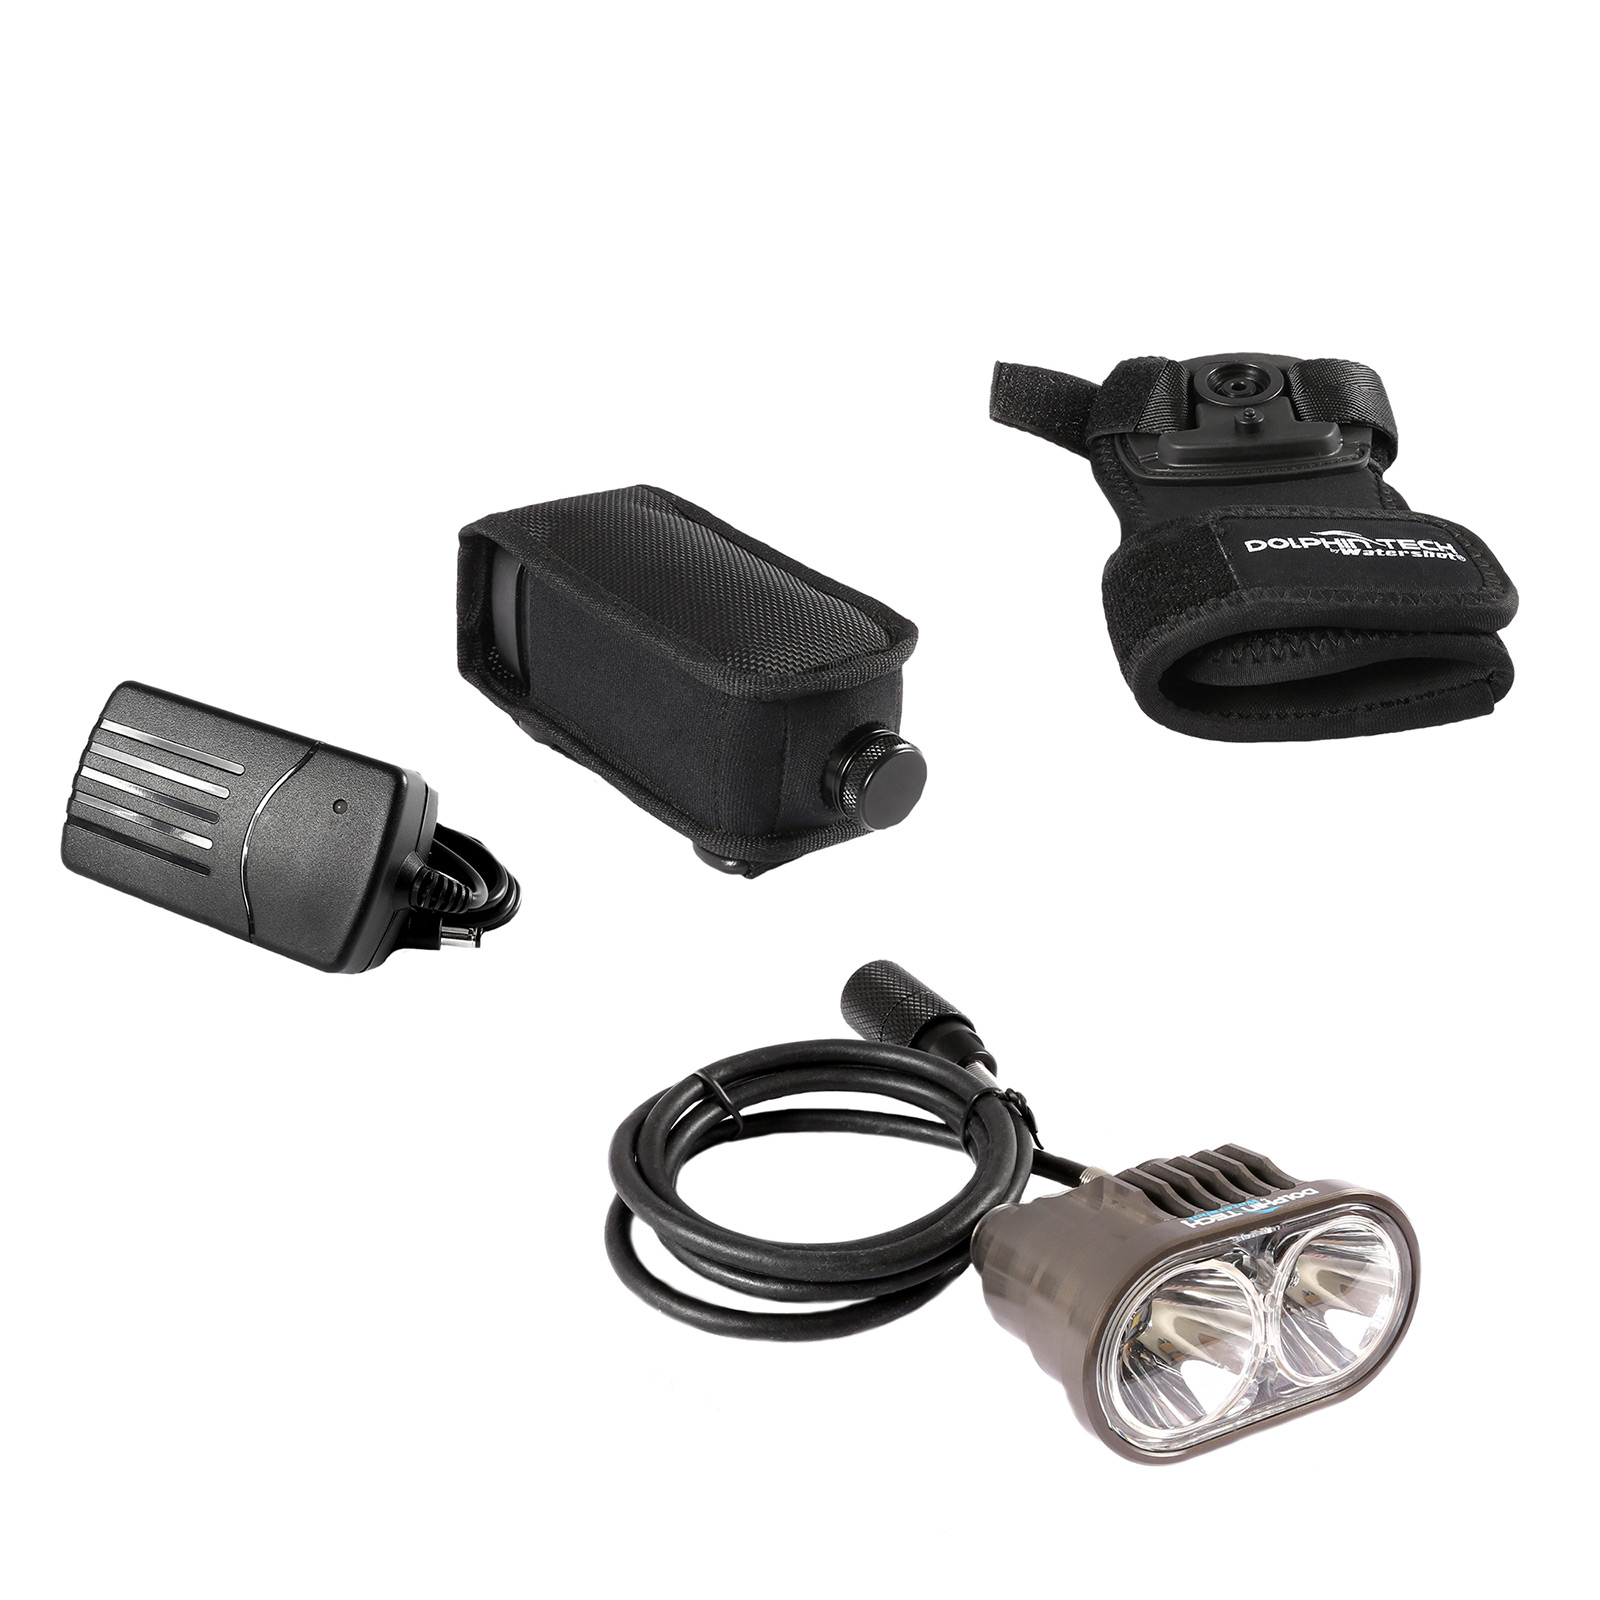 200 Lumen Dive Light Kit